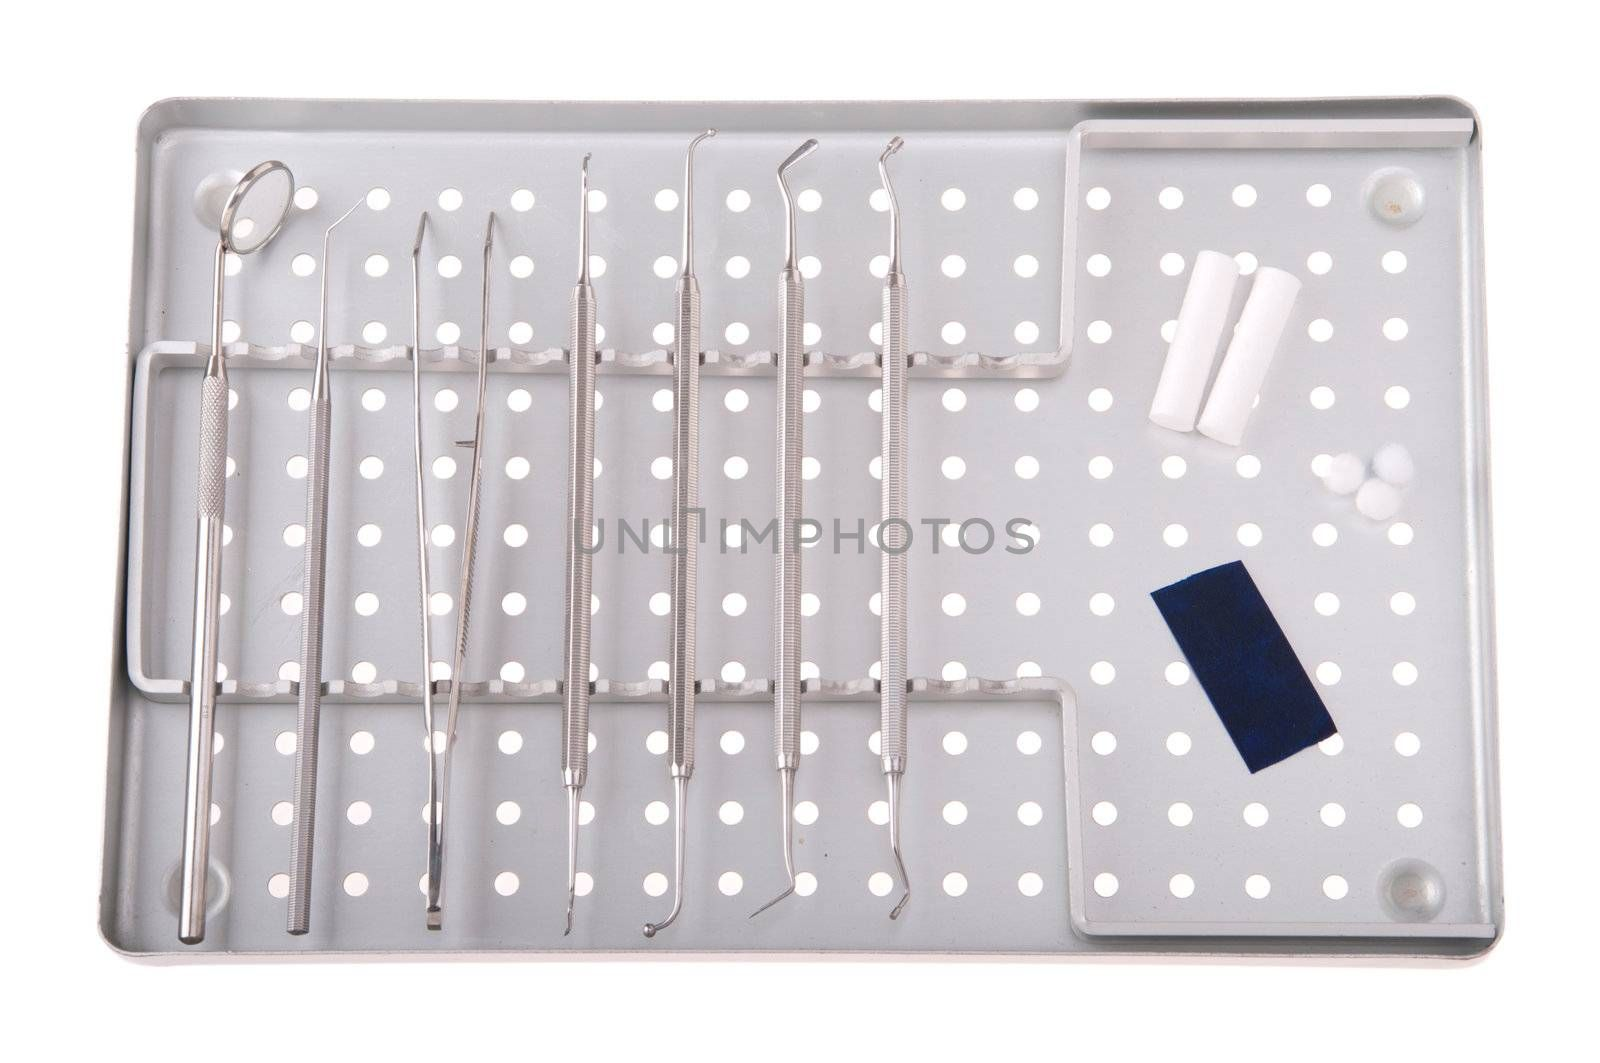 dentistry kit in a metal tray (surgery instruments, articulation paper, cotton rolls and wools)